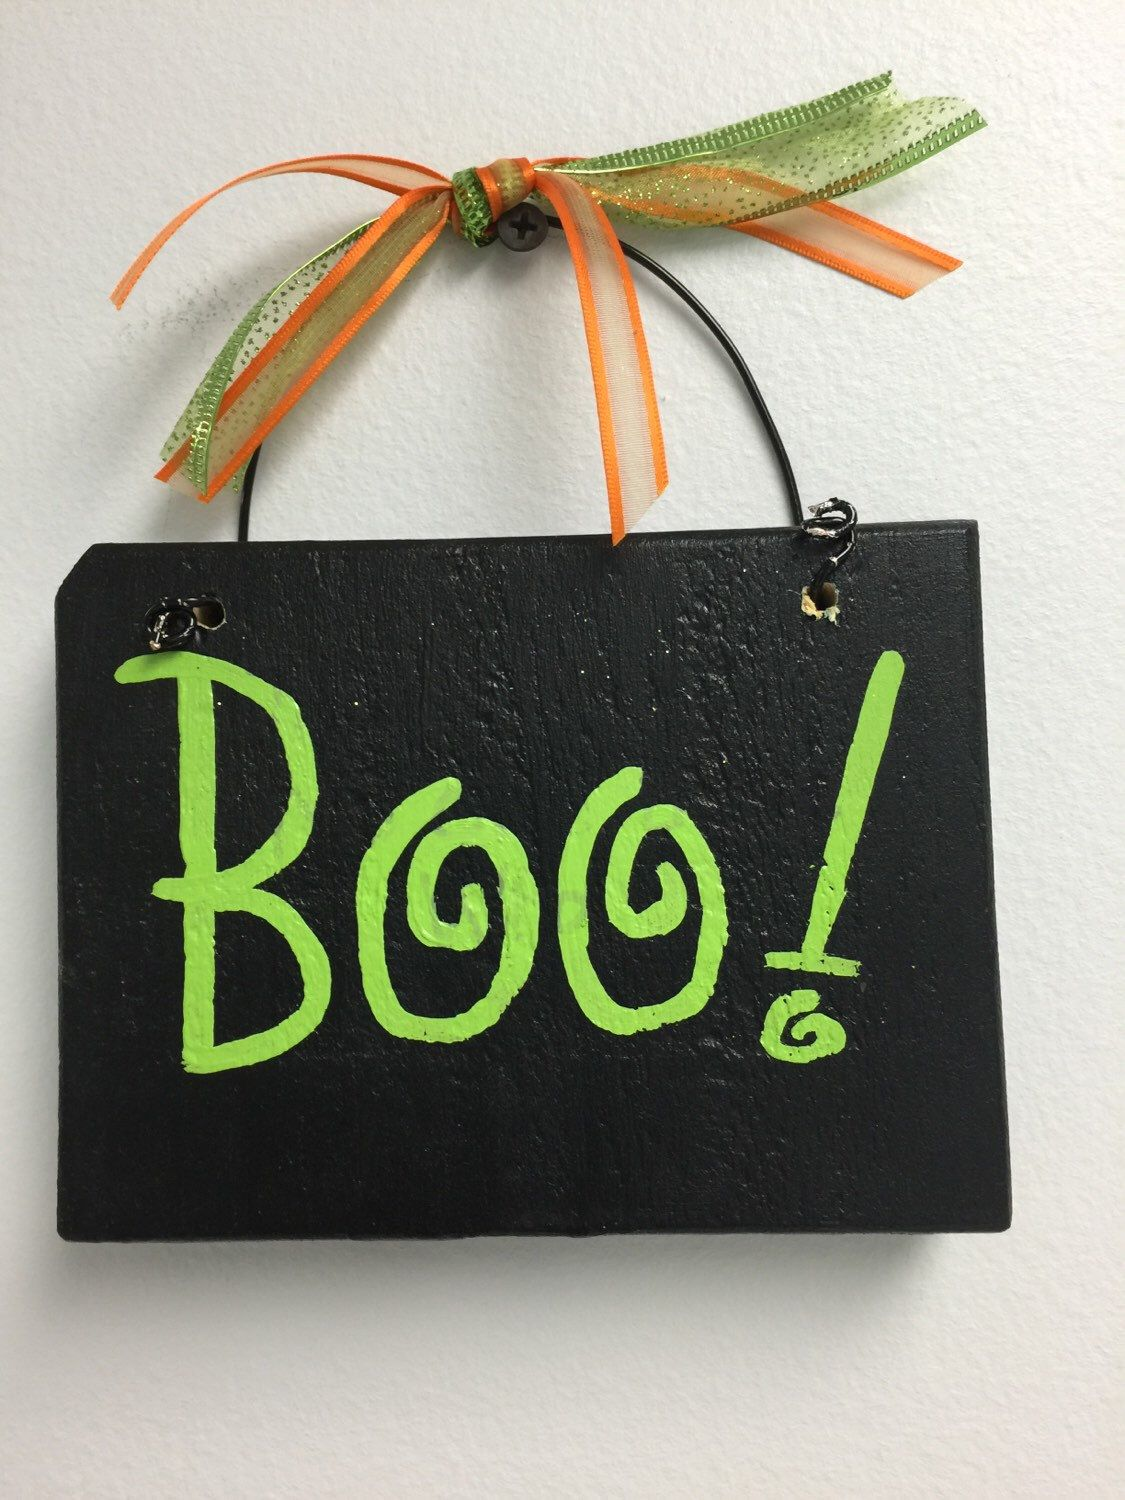 cute halloween decor halloween sign halloween decorations httpswwwetsy com - Etsy Halloween Decorations